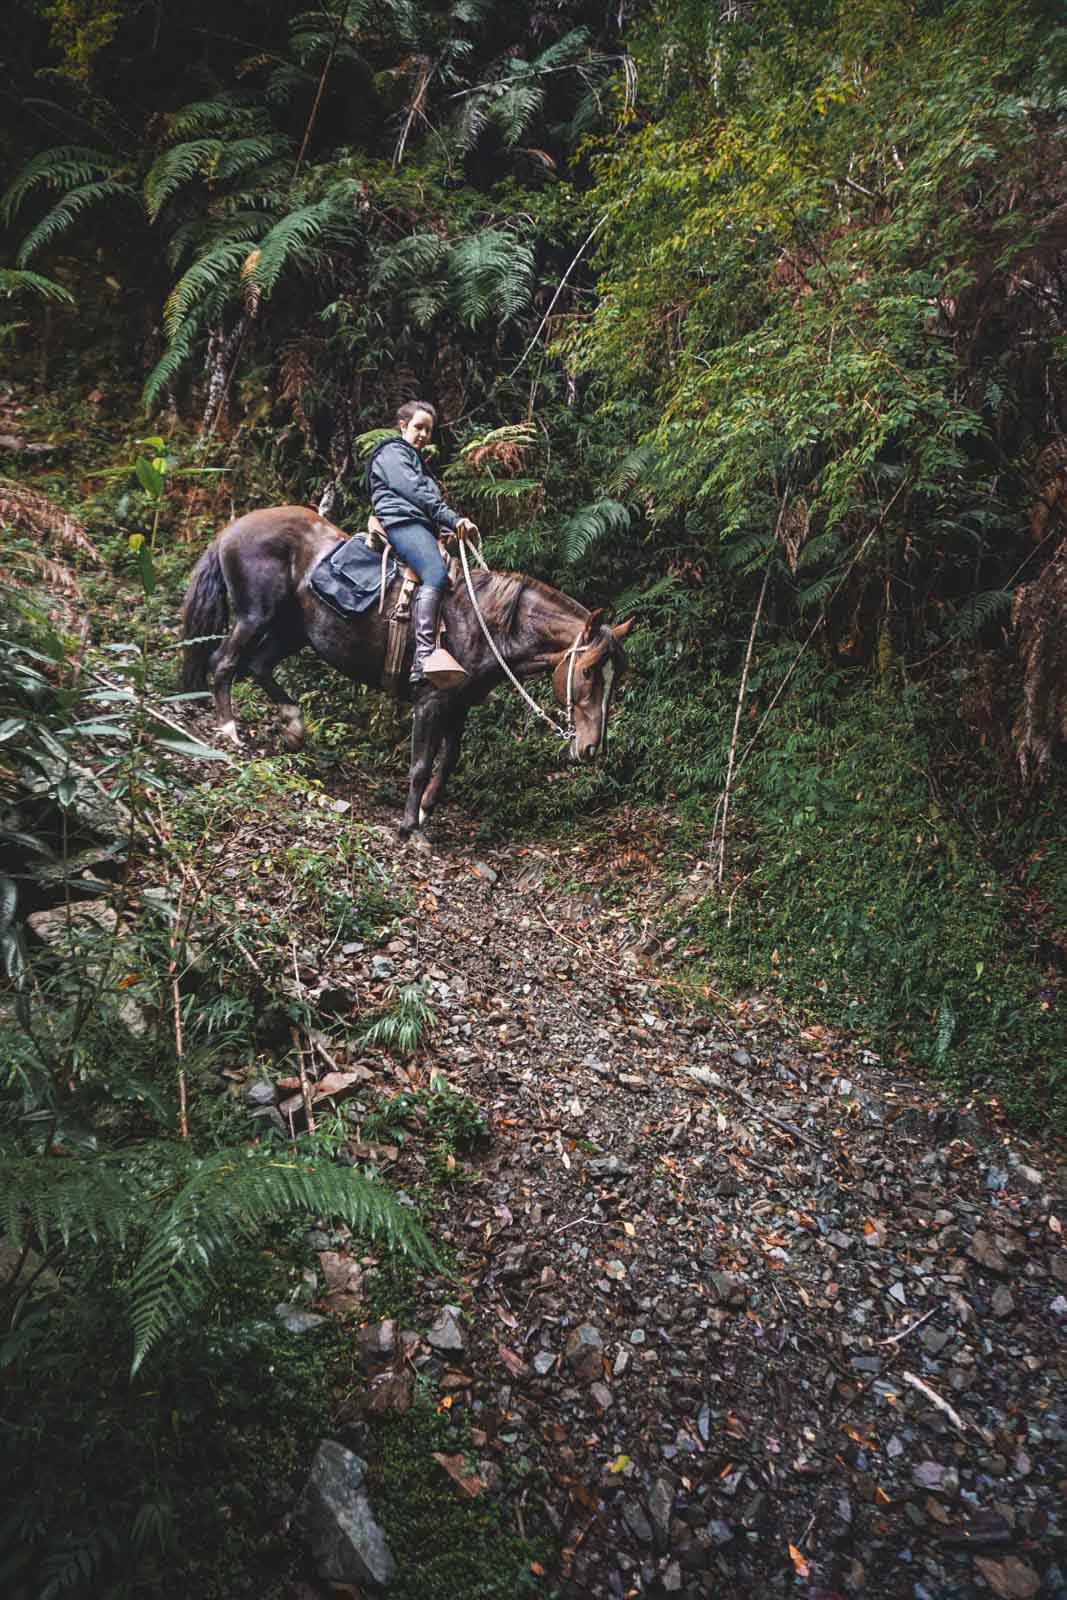 rancho-carhuello-horseback-riding-29